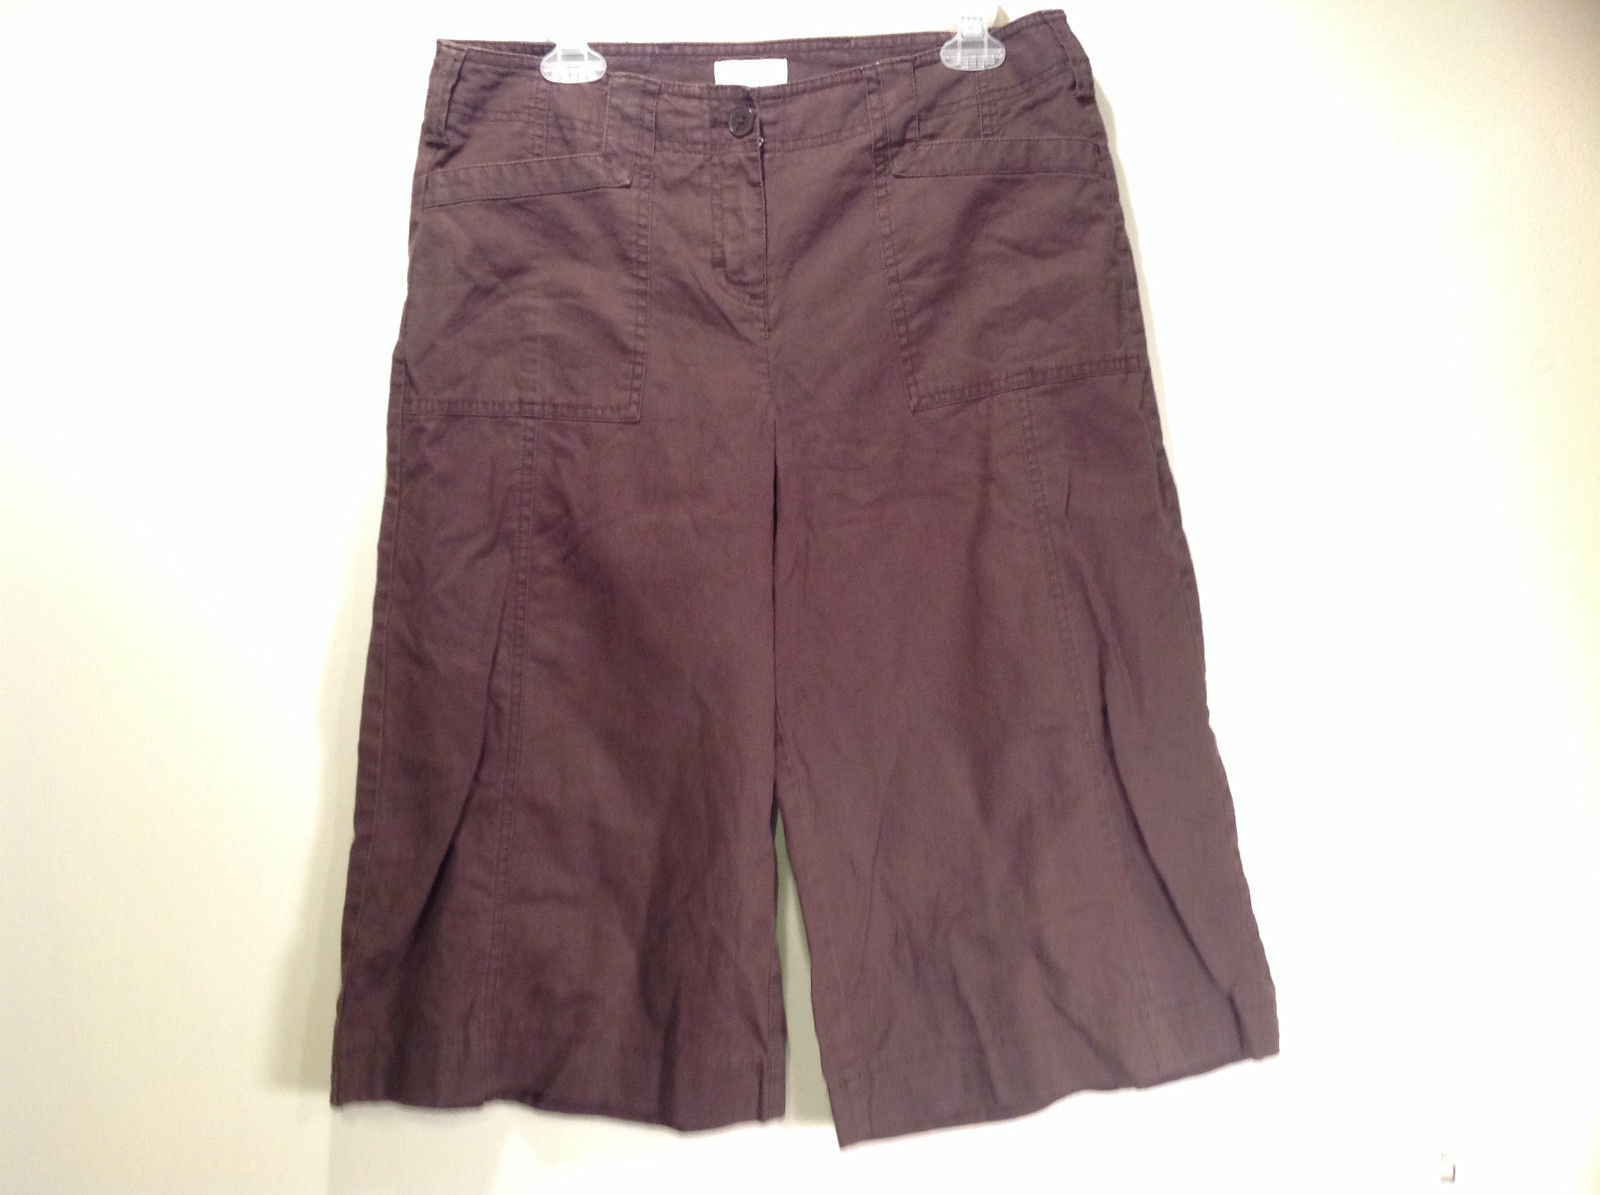 Dark Brown Walking Shorts Size 10 Ann Taylor Loft Front and Back Pockets